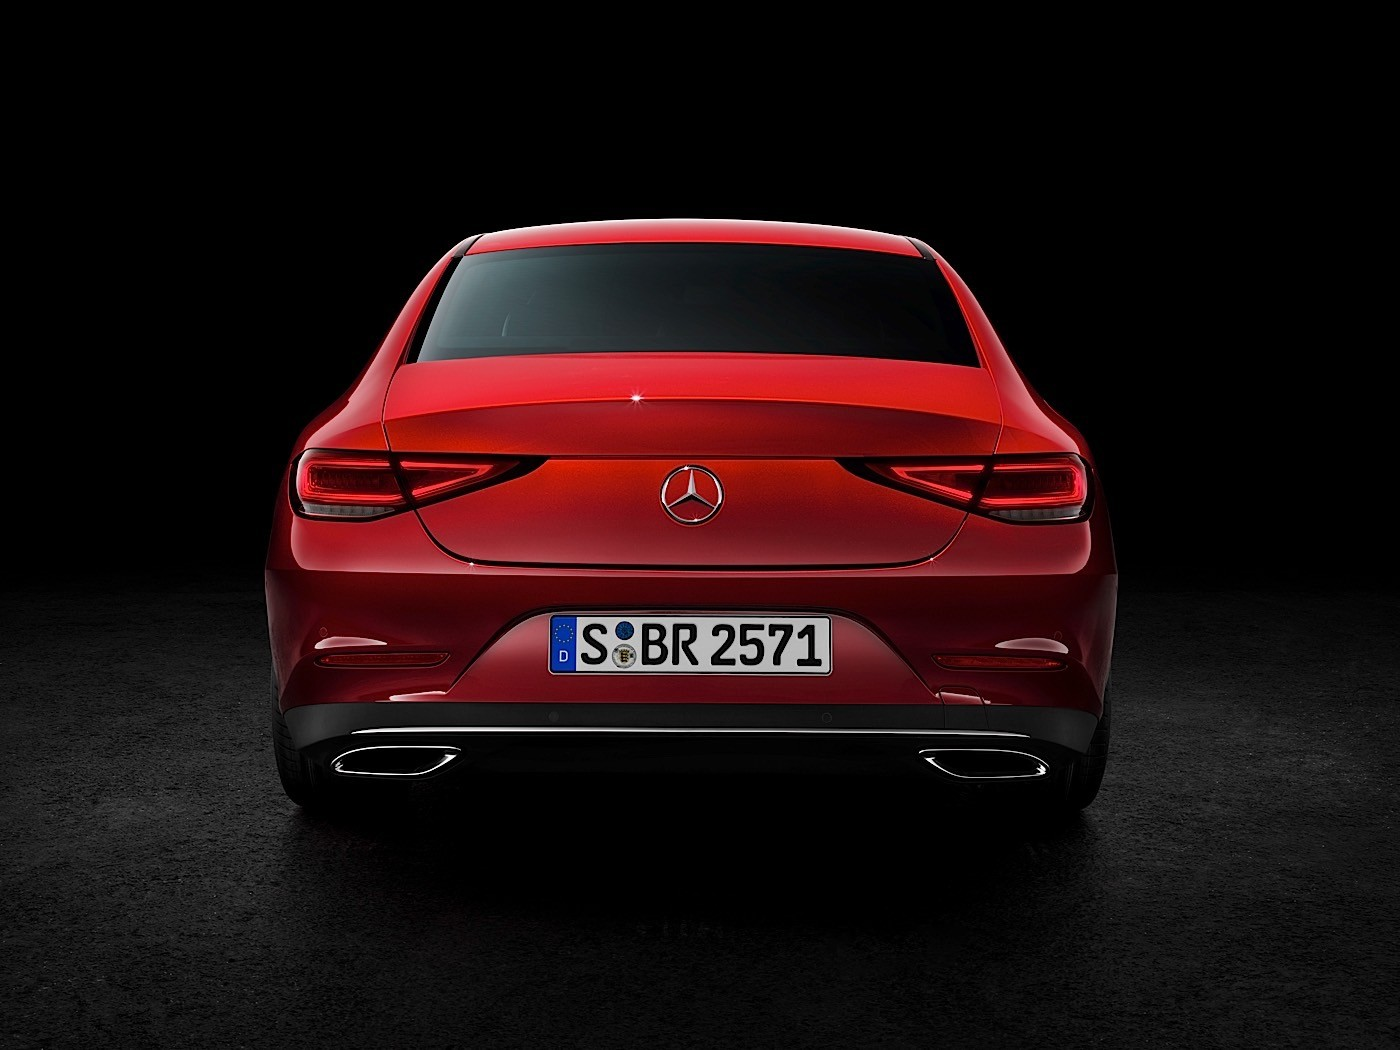 2018 mercedes benz cls c257 gets a polarizing rear end. Black Bedroom Furniture Sets. Home Design Ideas